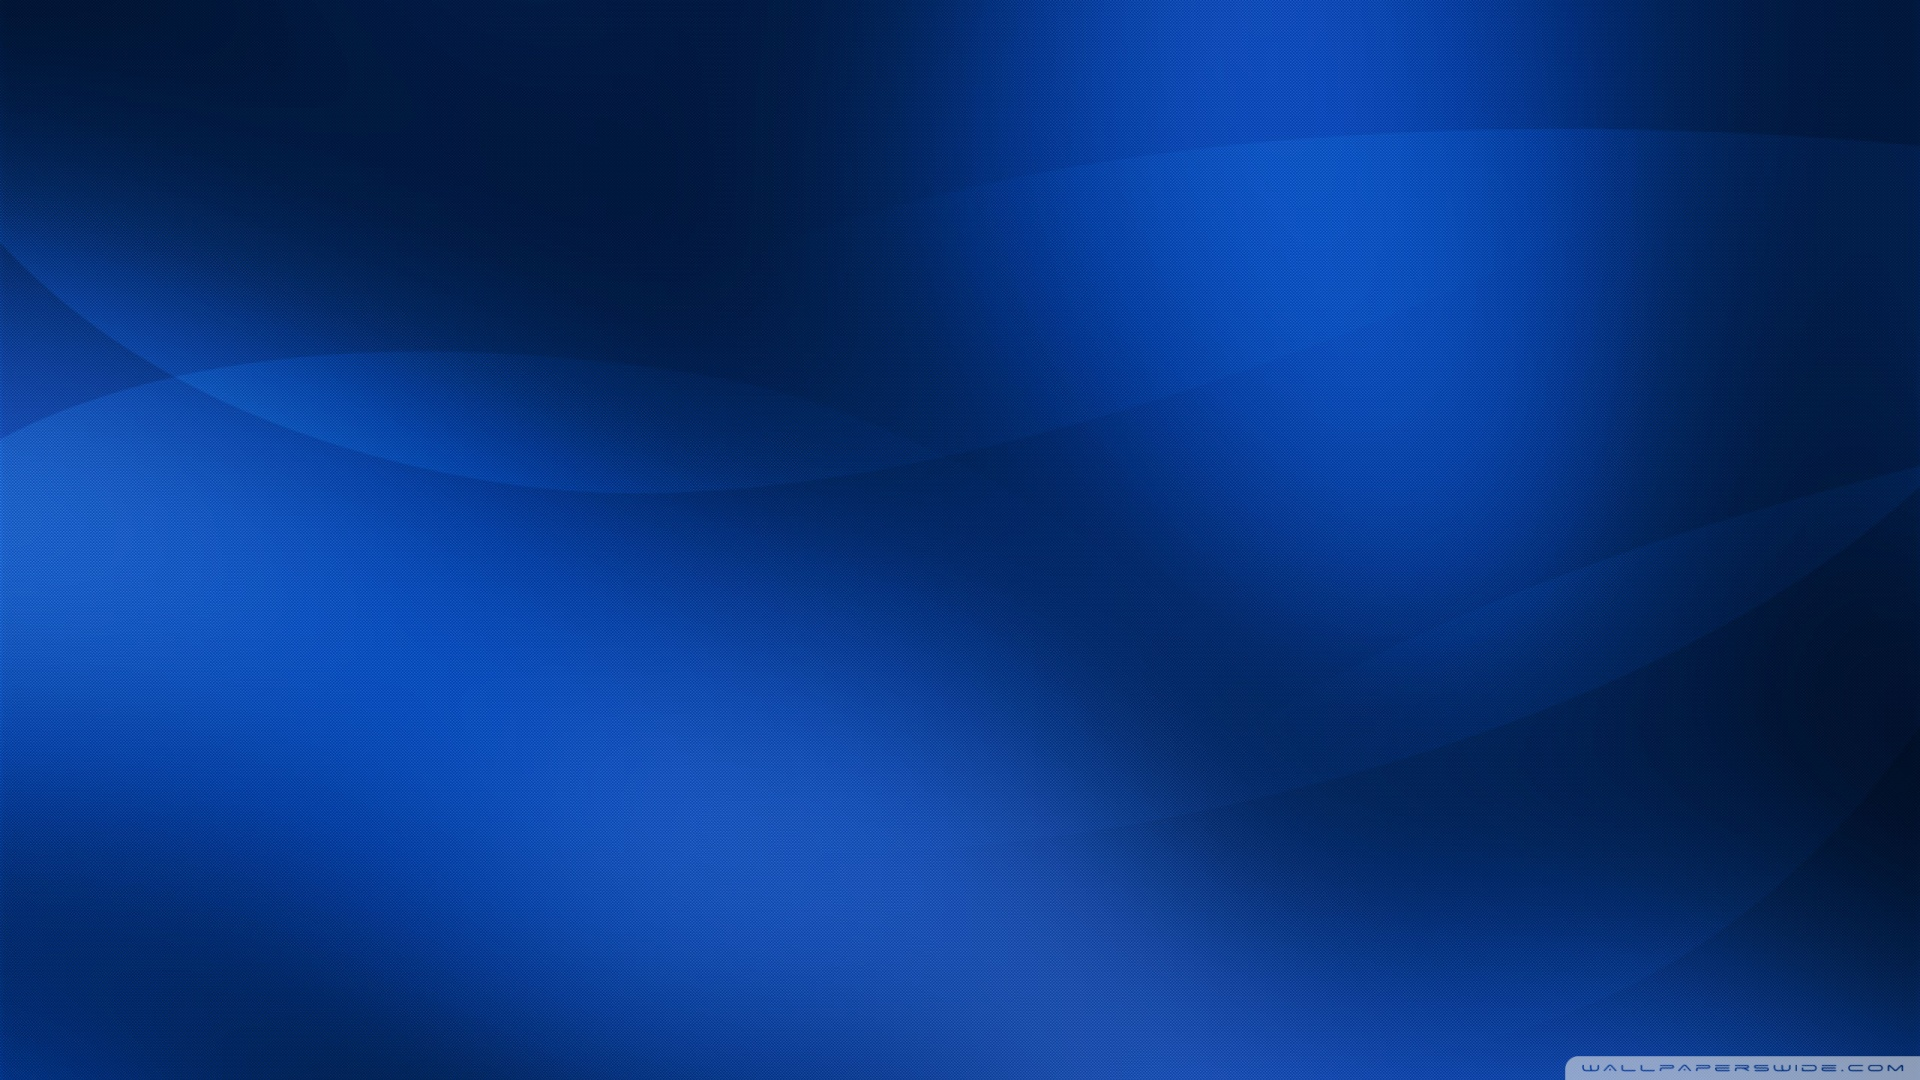 blue-wallpaper-1920x1080-hd-wallpapers-blue-wallpaper-by ...